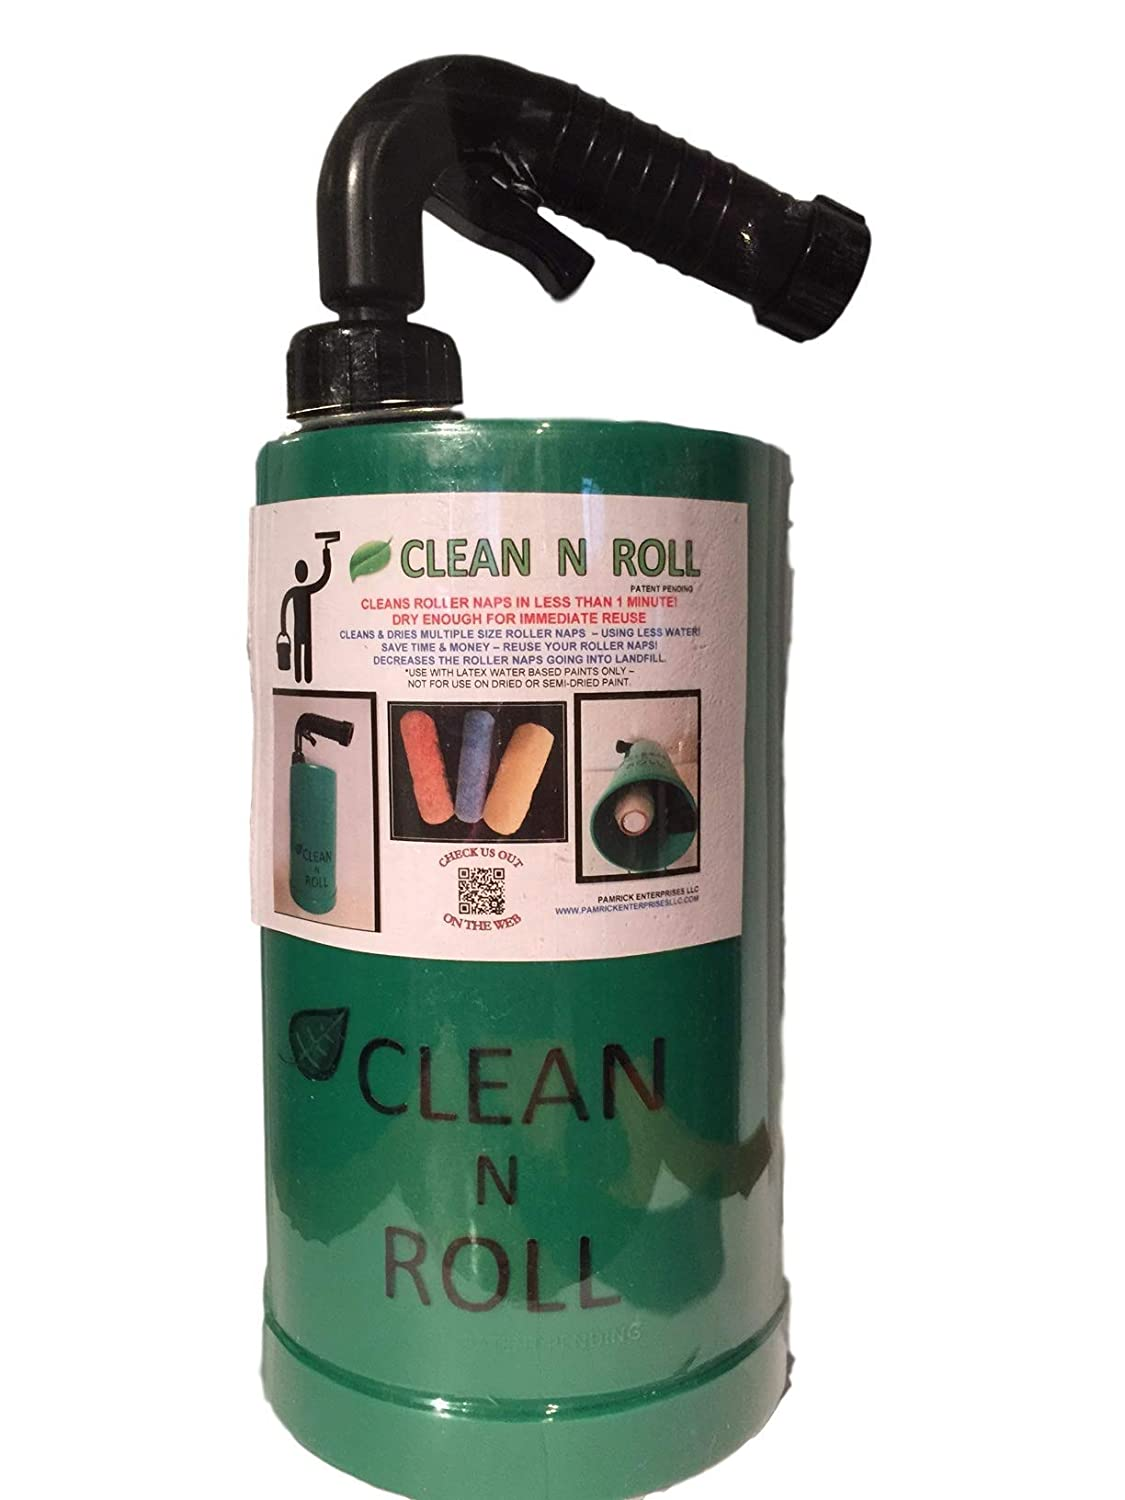 Clean N Roll Paint Roller Cleaner   Professional Grade Rolling Nap Cleaning Tool   Cleans Roller Skins In Less Than A Minute